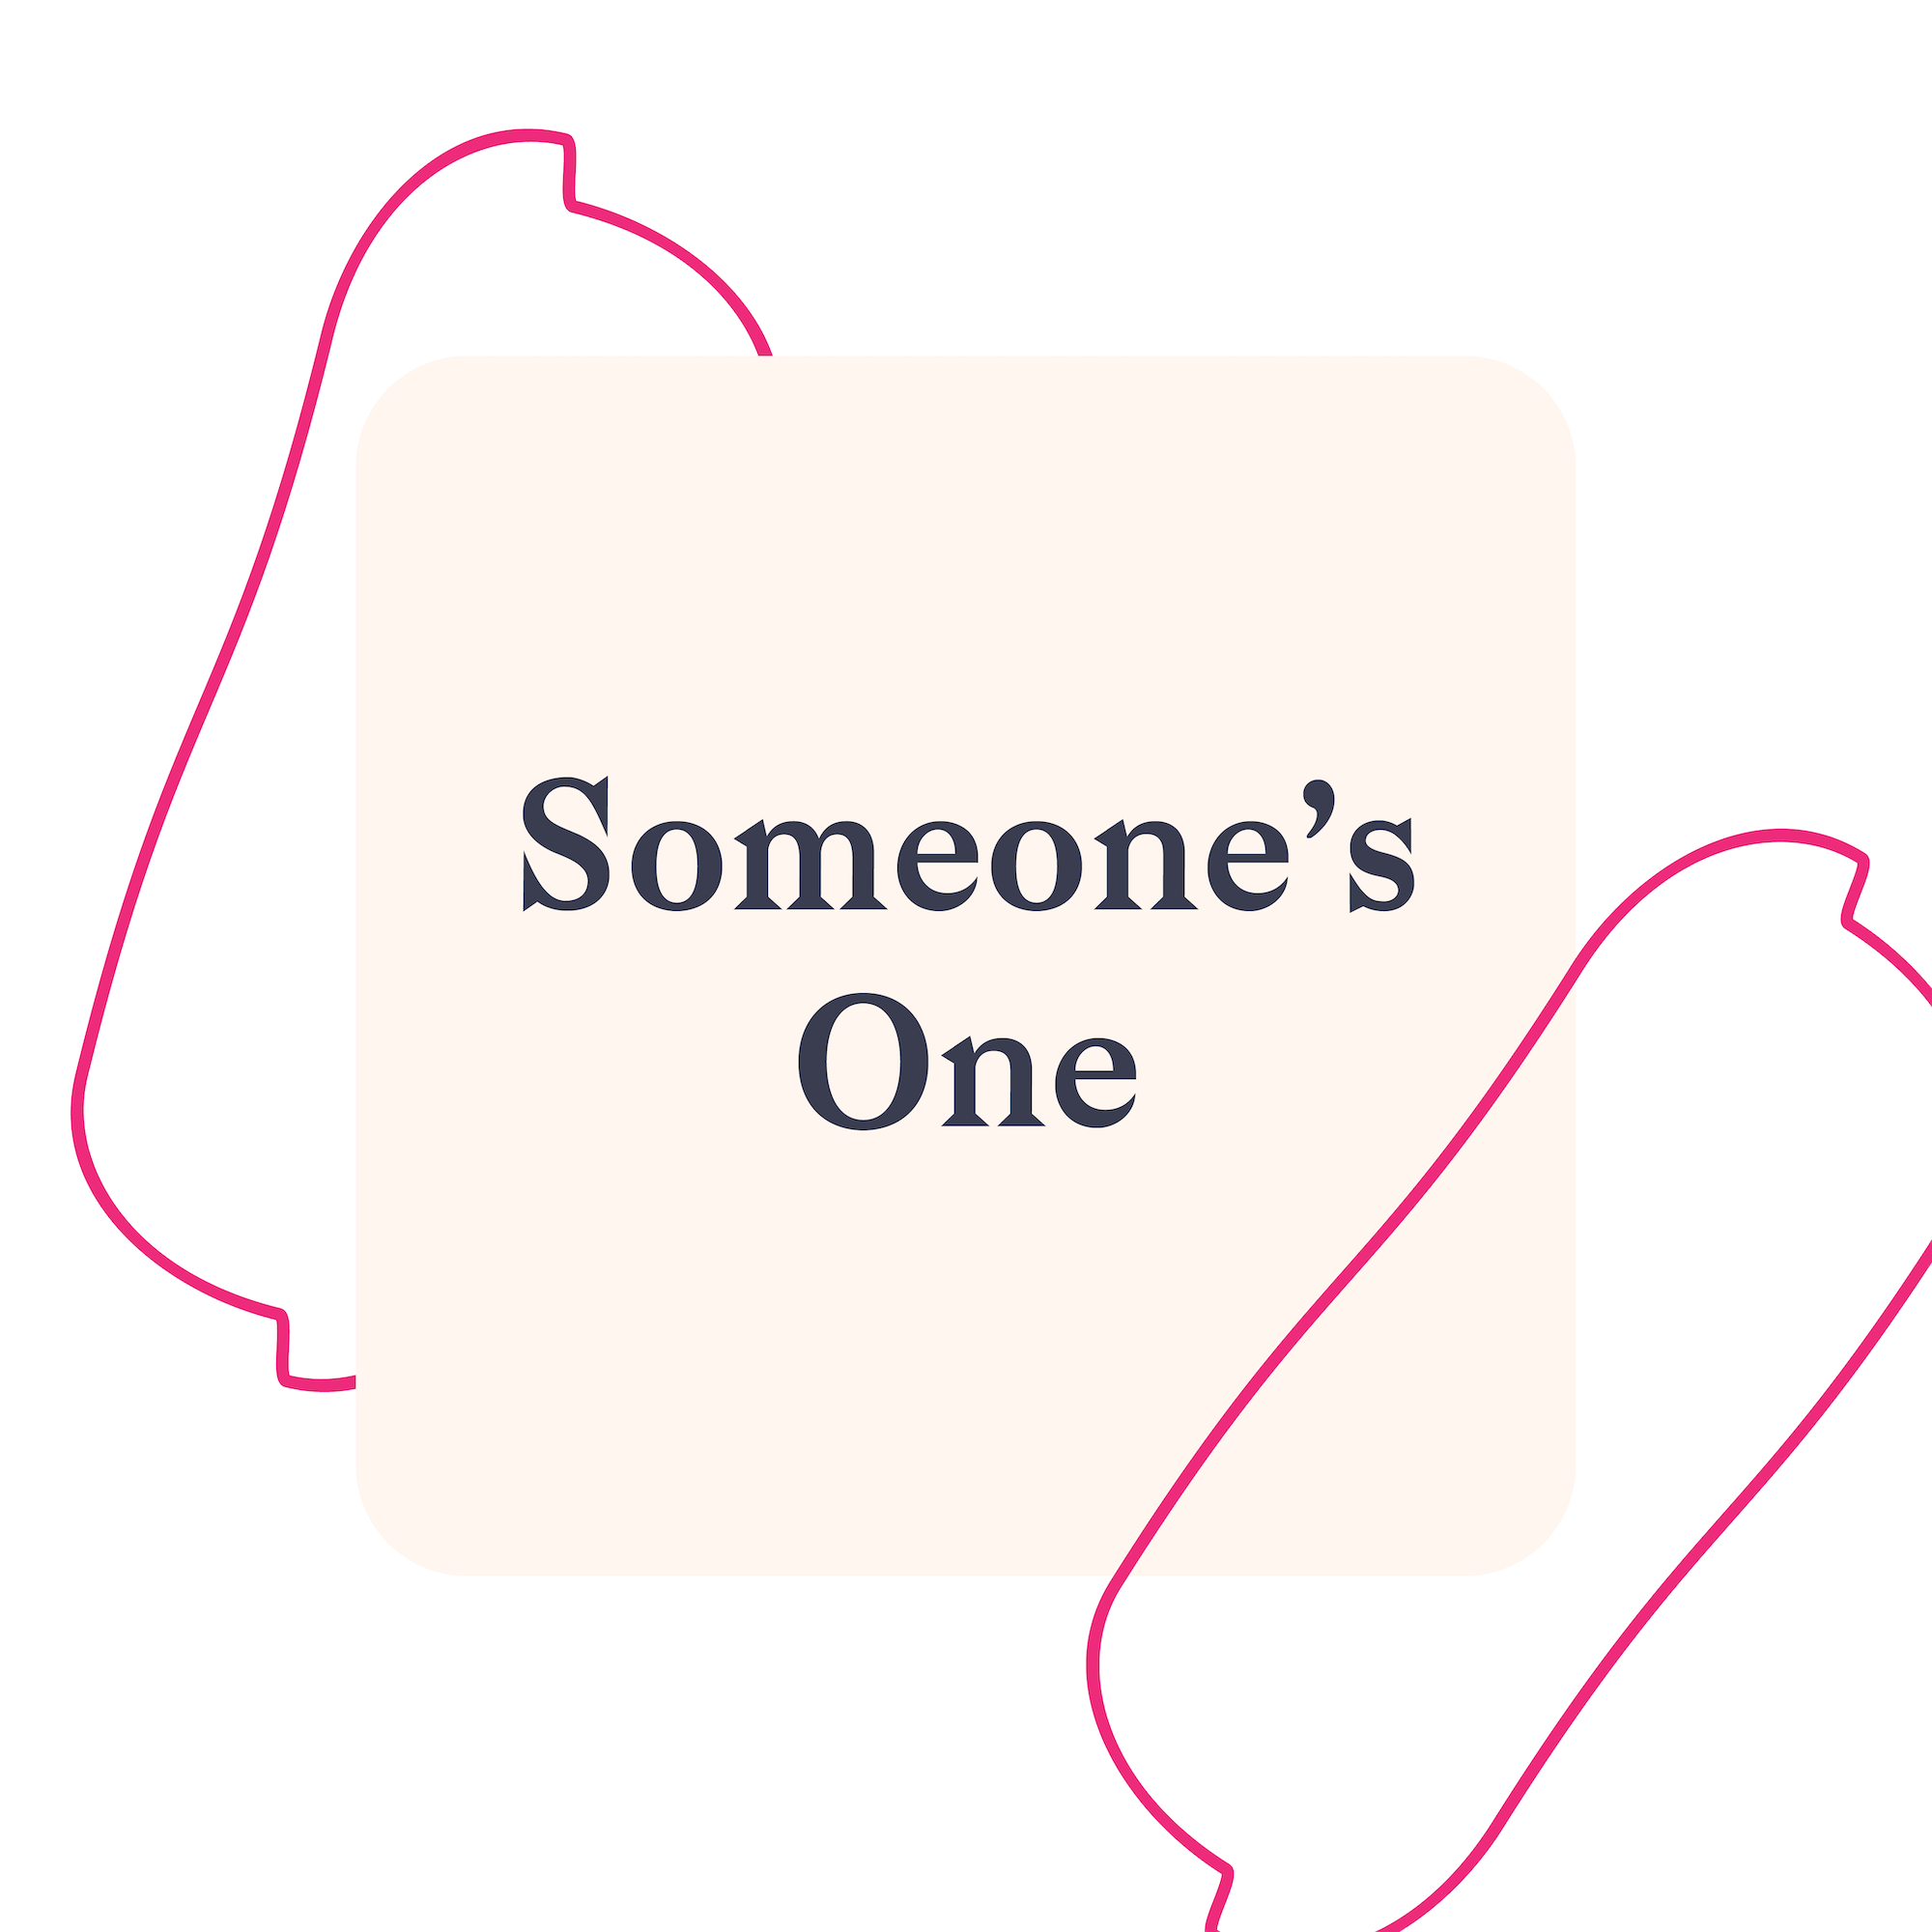 Someone's One! - Mondays at 7:30 pm with Marcella Kelson